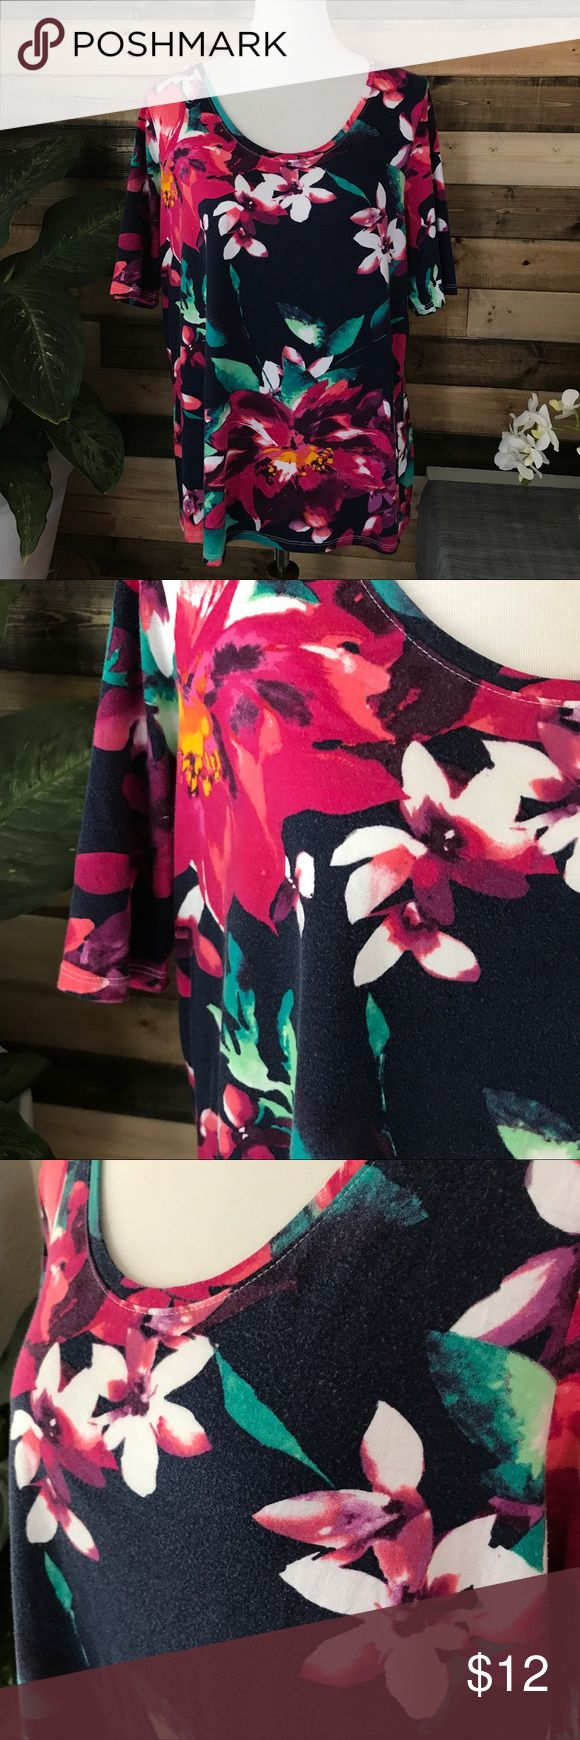 """Lane Bryant floral Supima Cotton shirt! Plus 18/20 Great floral tee with a navy blue background. Very light wash wear, which is normal for the Supima Cotton(SO SOFT!) and micromodal fabric.  Bust 22"""" Length 26.5"""" Lane Bryant // women's Size 18/20 Lane Bryant Tops Tees - Short Sleeve"""